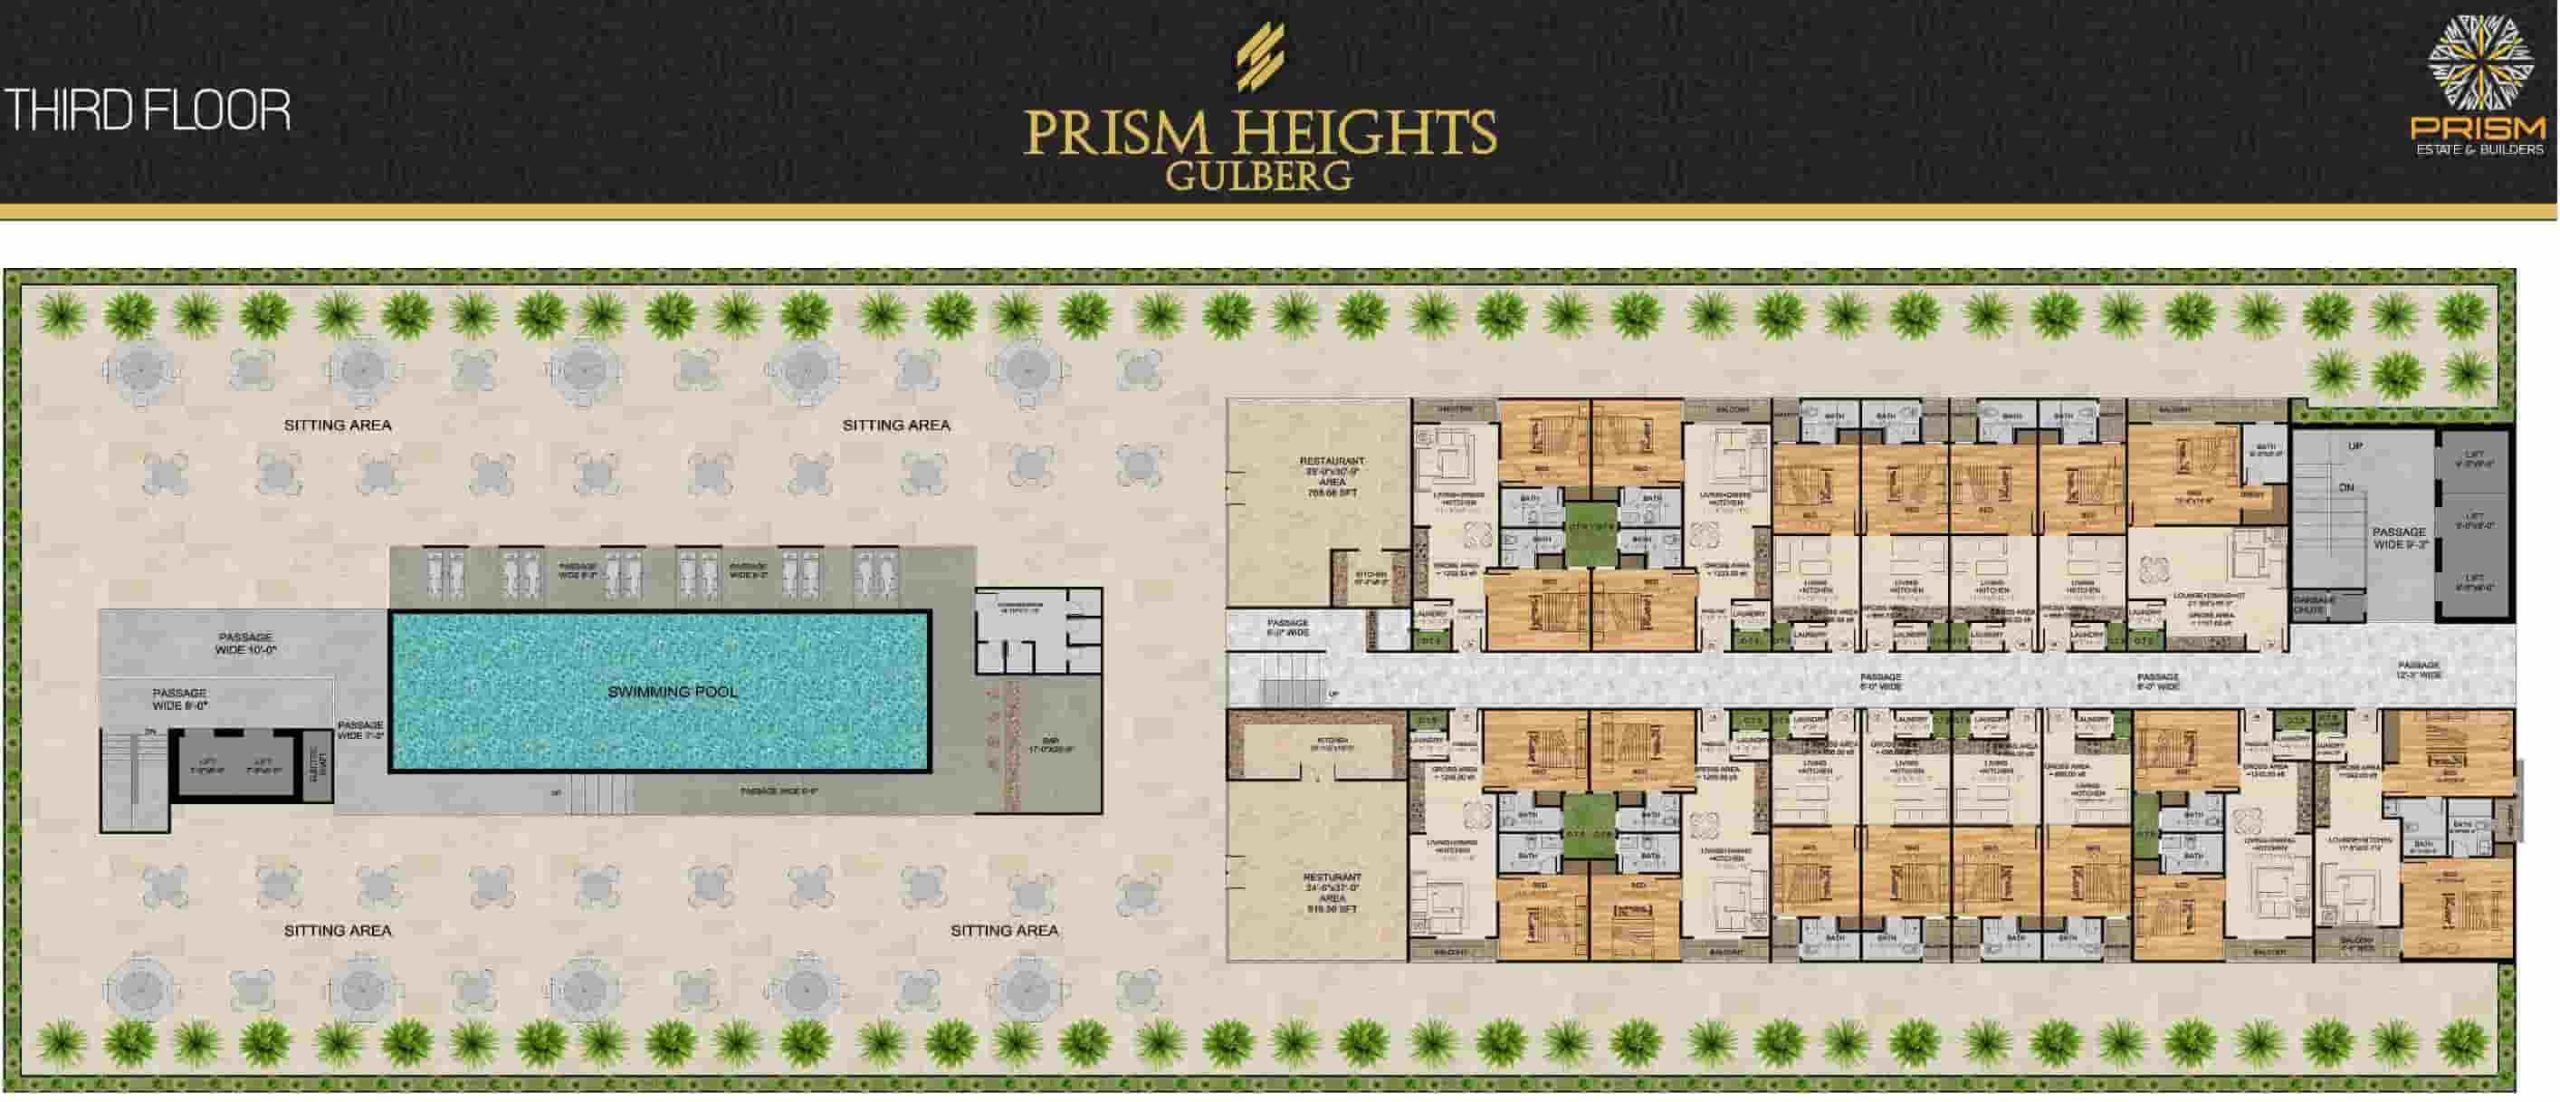 Prism Heights 3rd Floor Plan